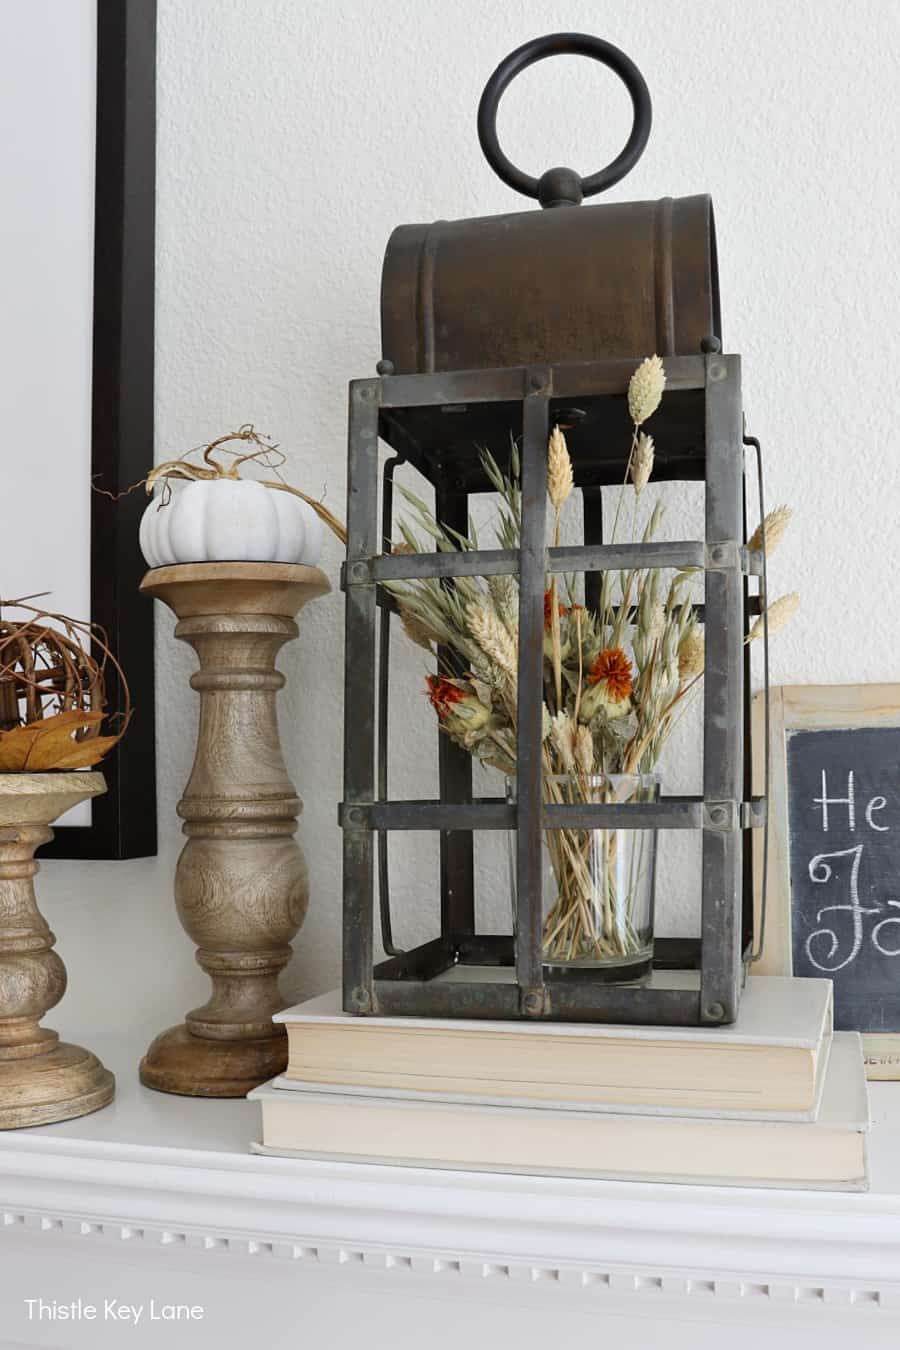 Vintage lantern with a flower arrangement inside. Decorating A Fall Mantel With Dried Arrangements.